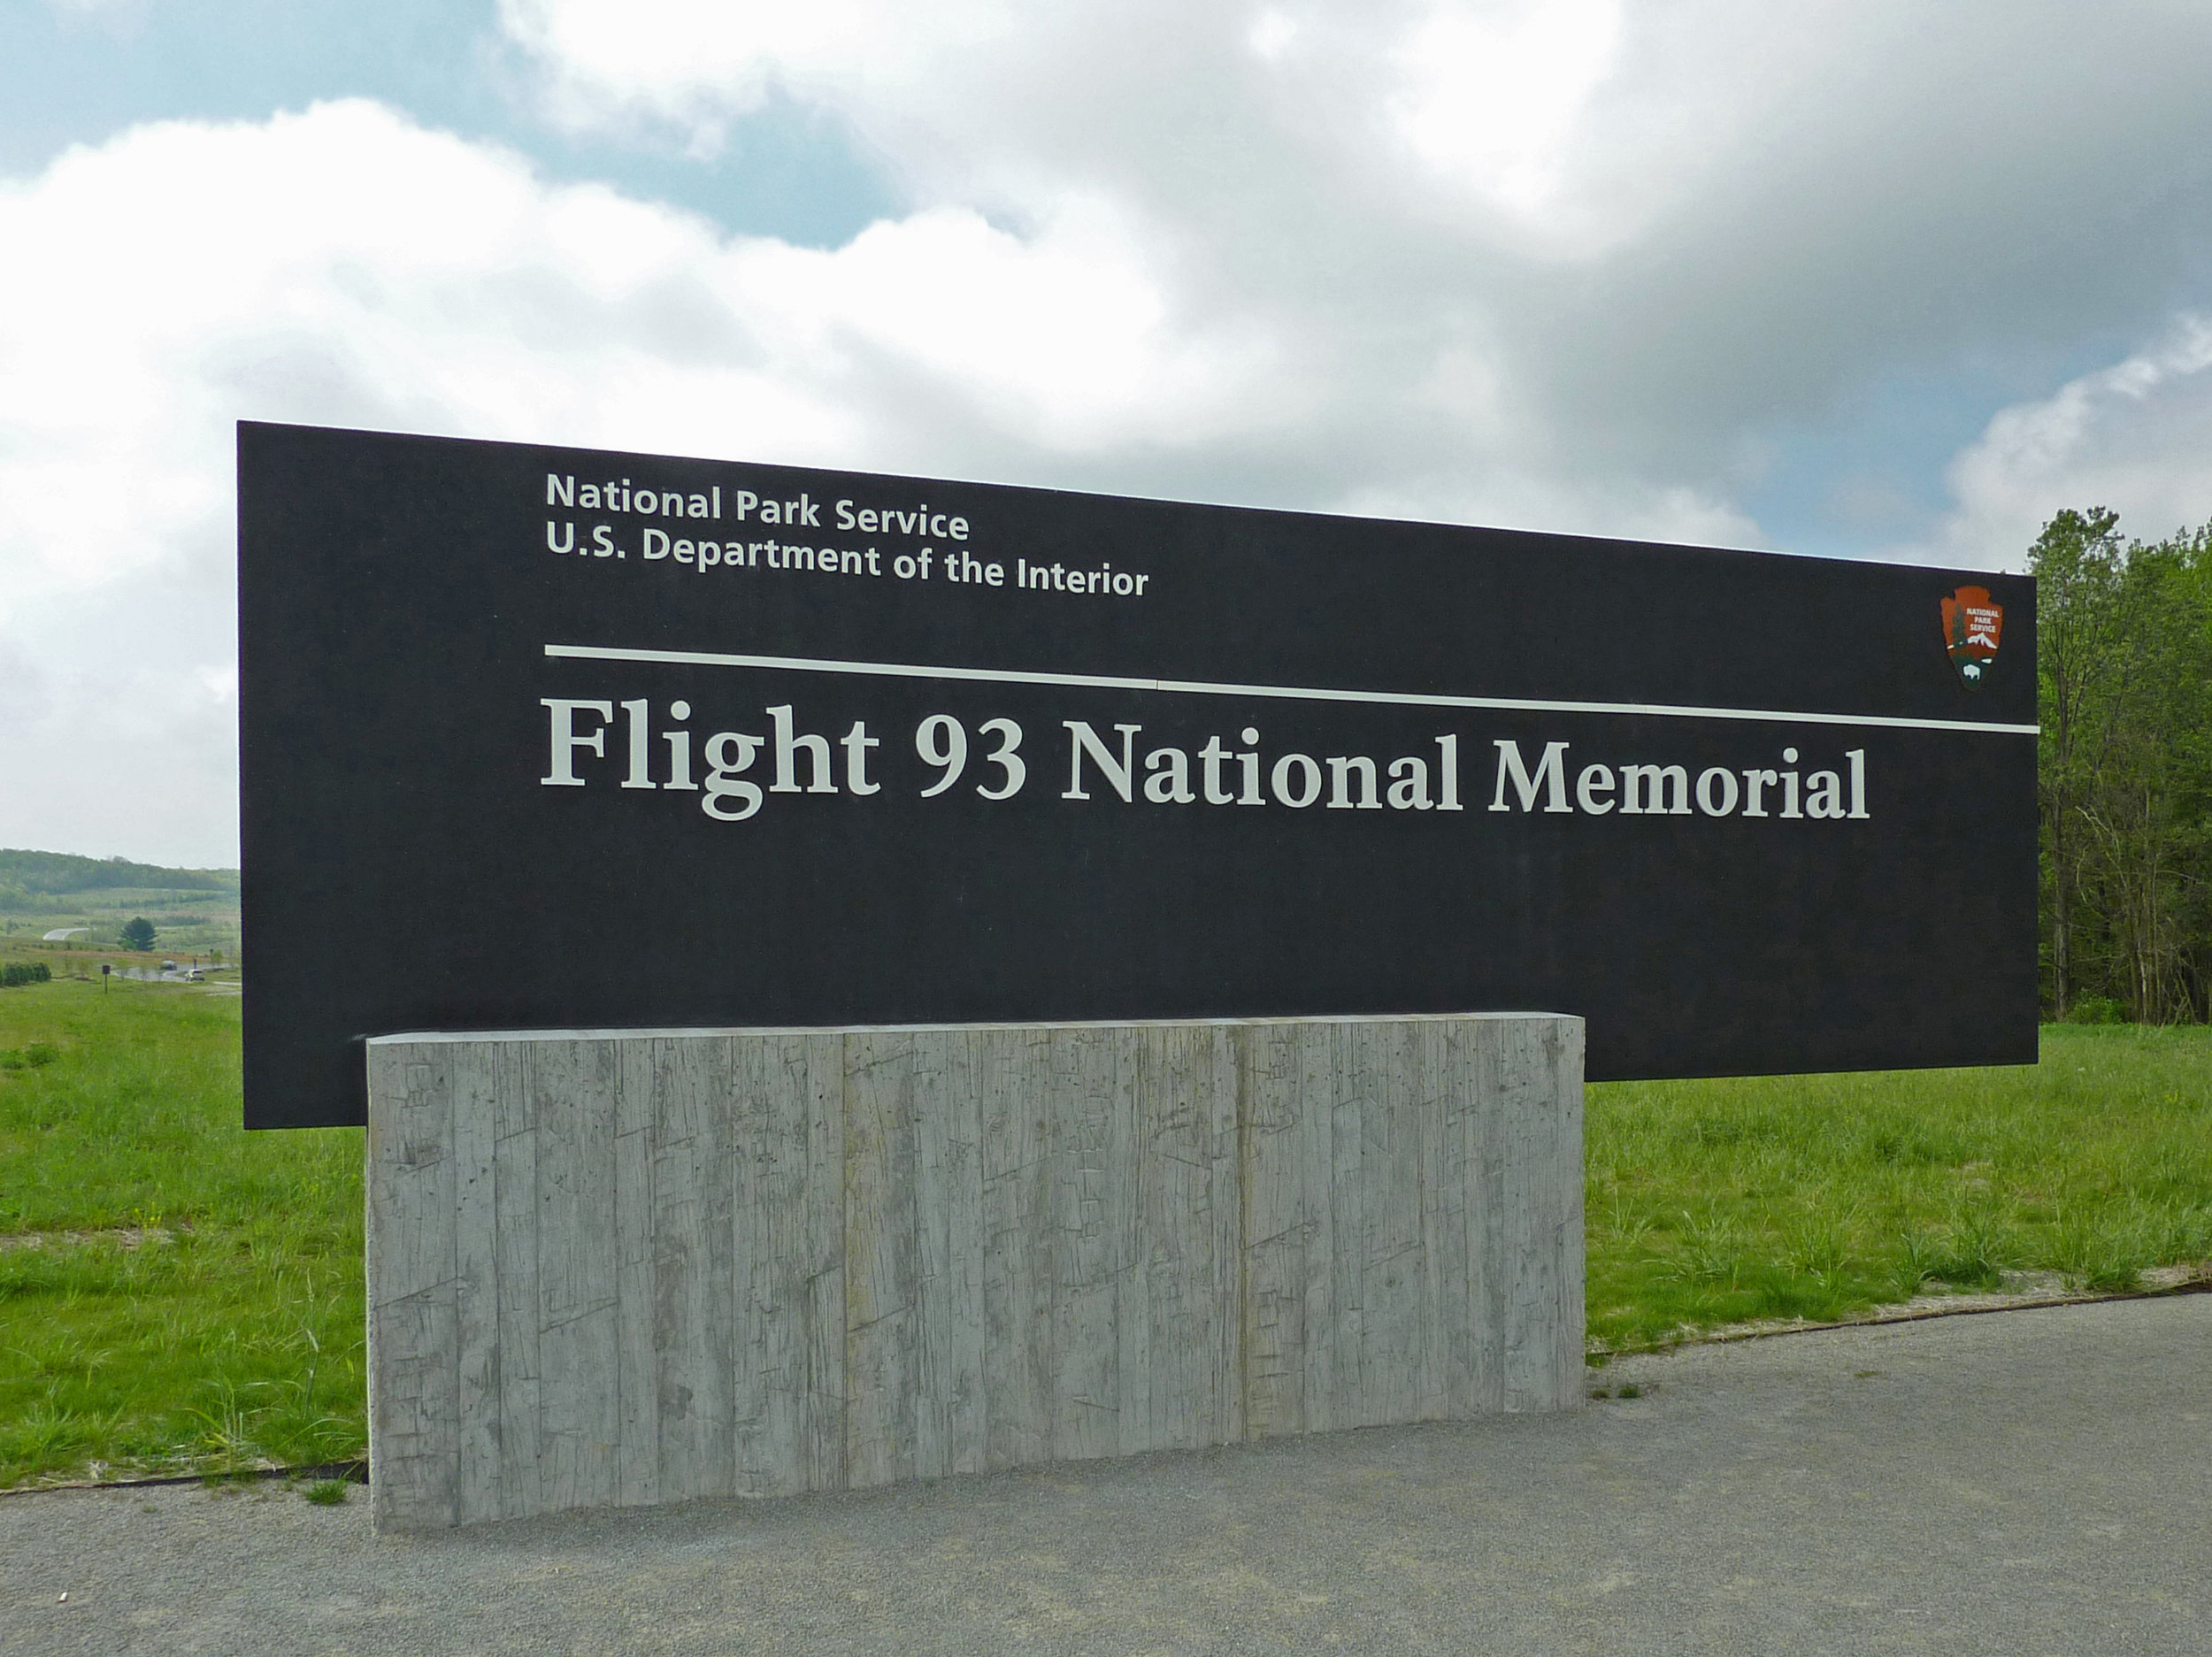 A_tour_of_the_Flight_93_National_Memorial_-_01.jpg